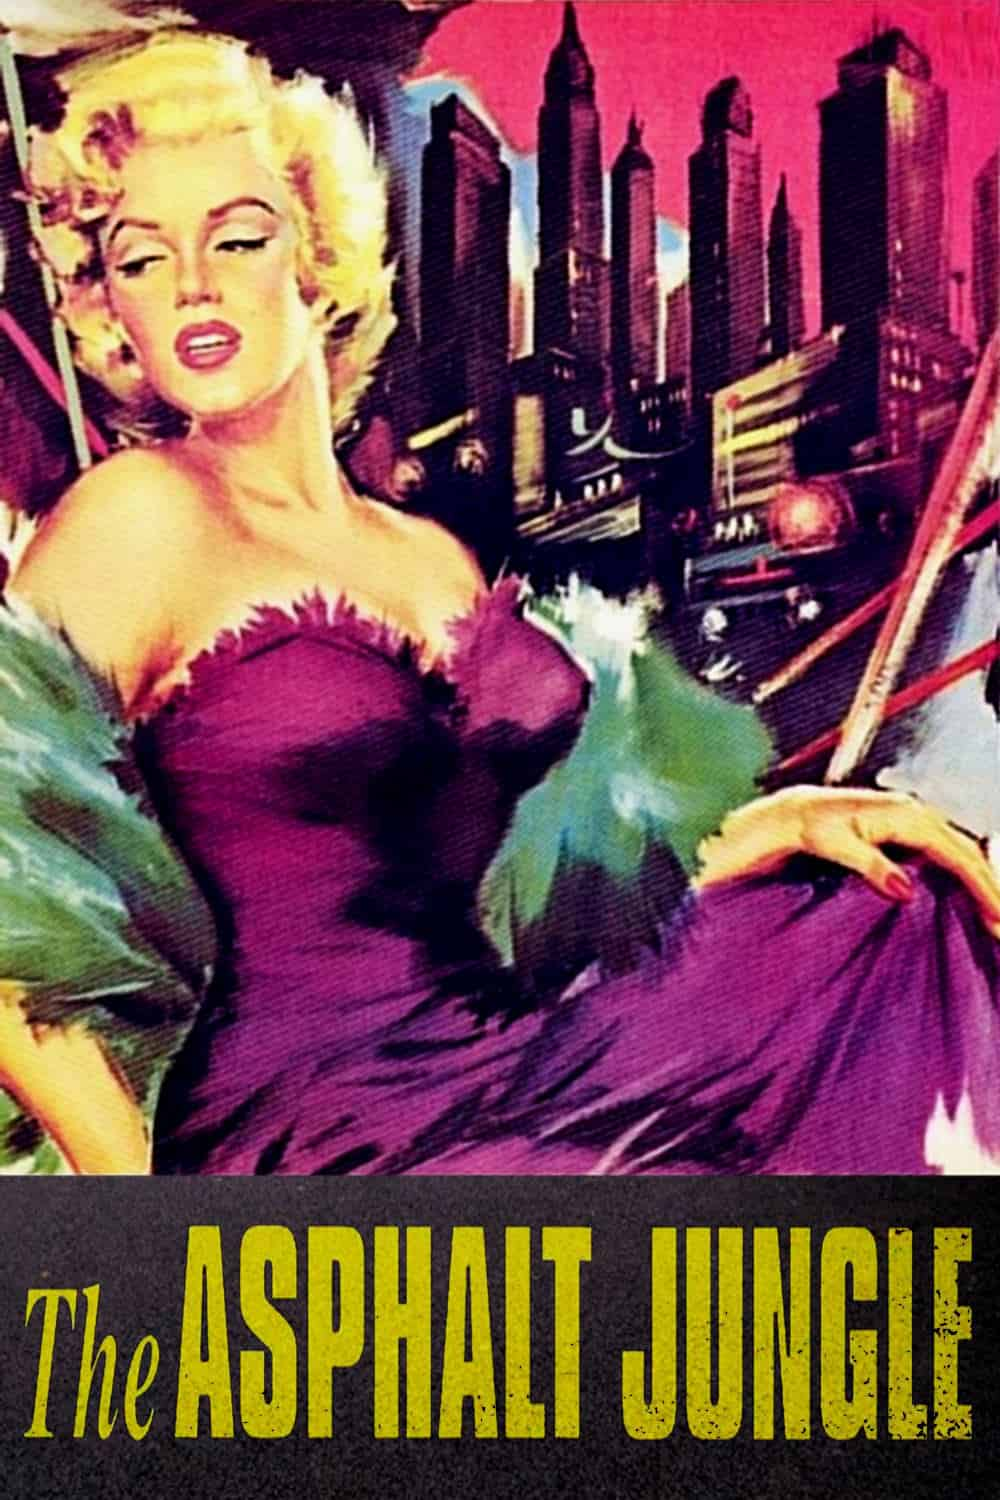 The Asphalt Jungle, 1950